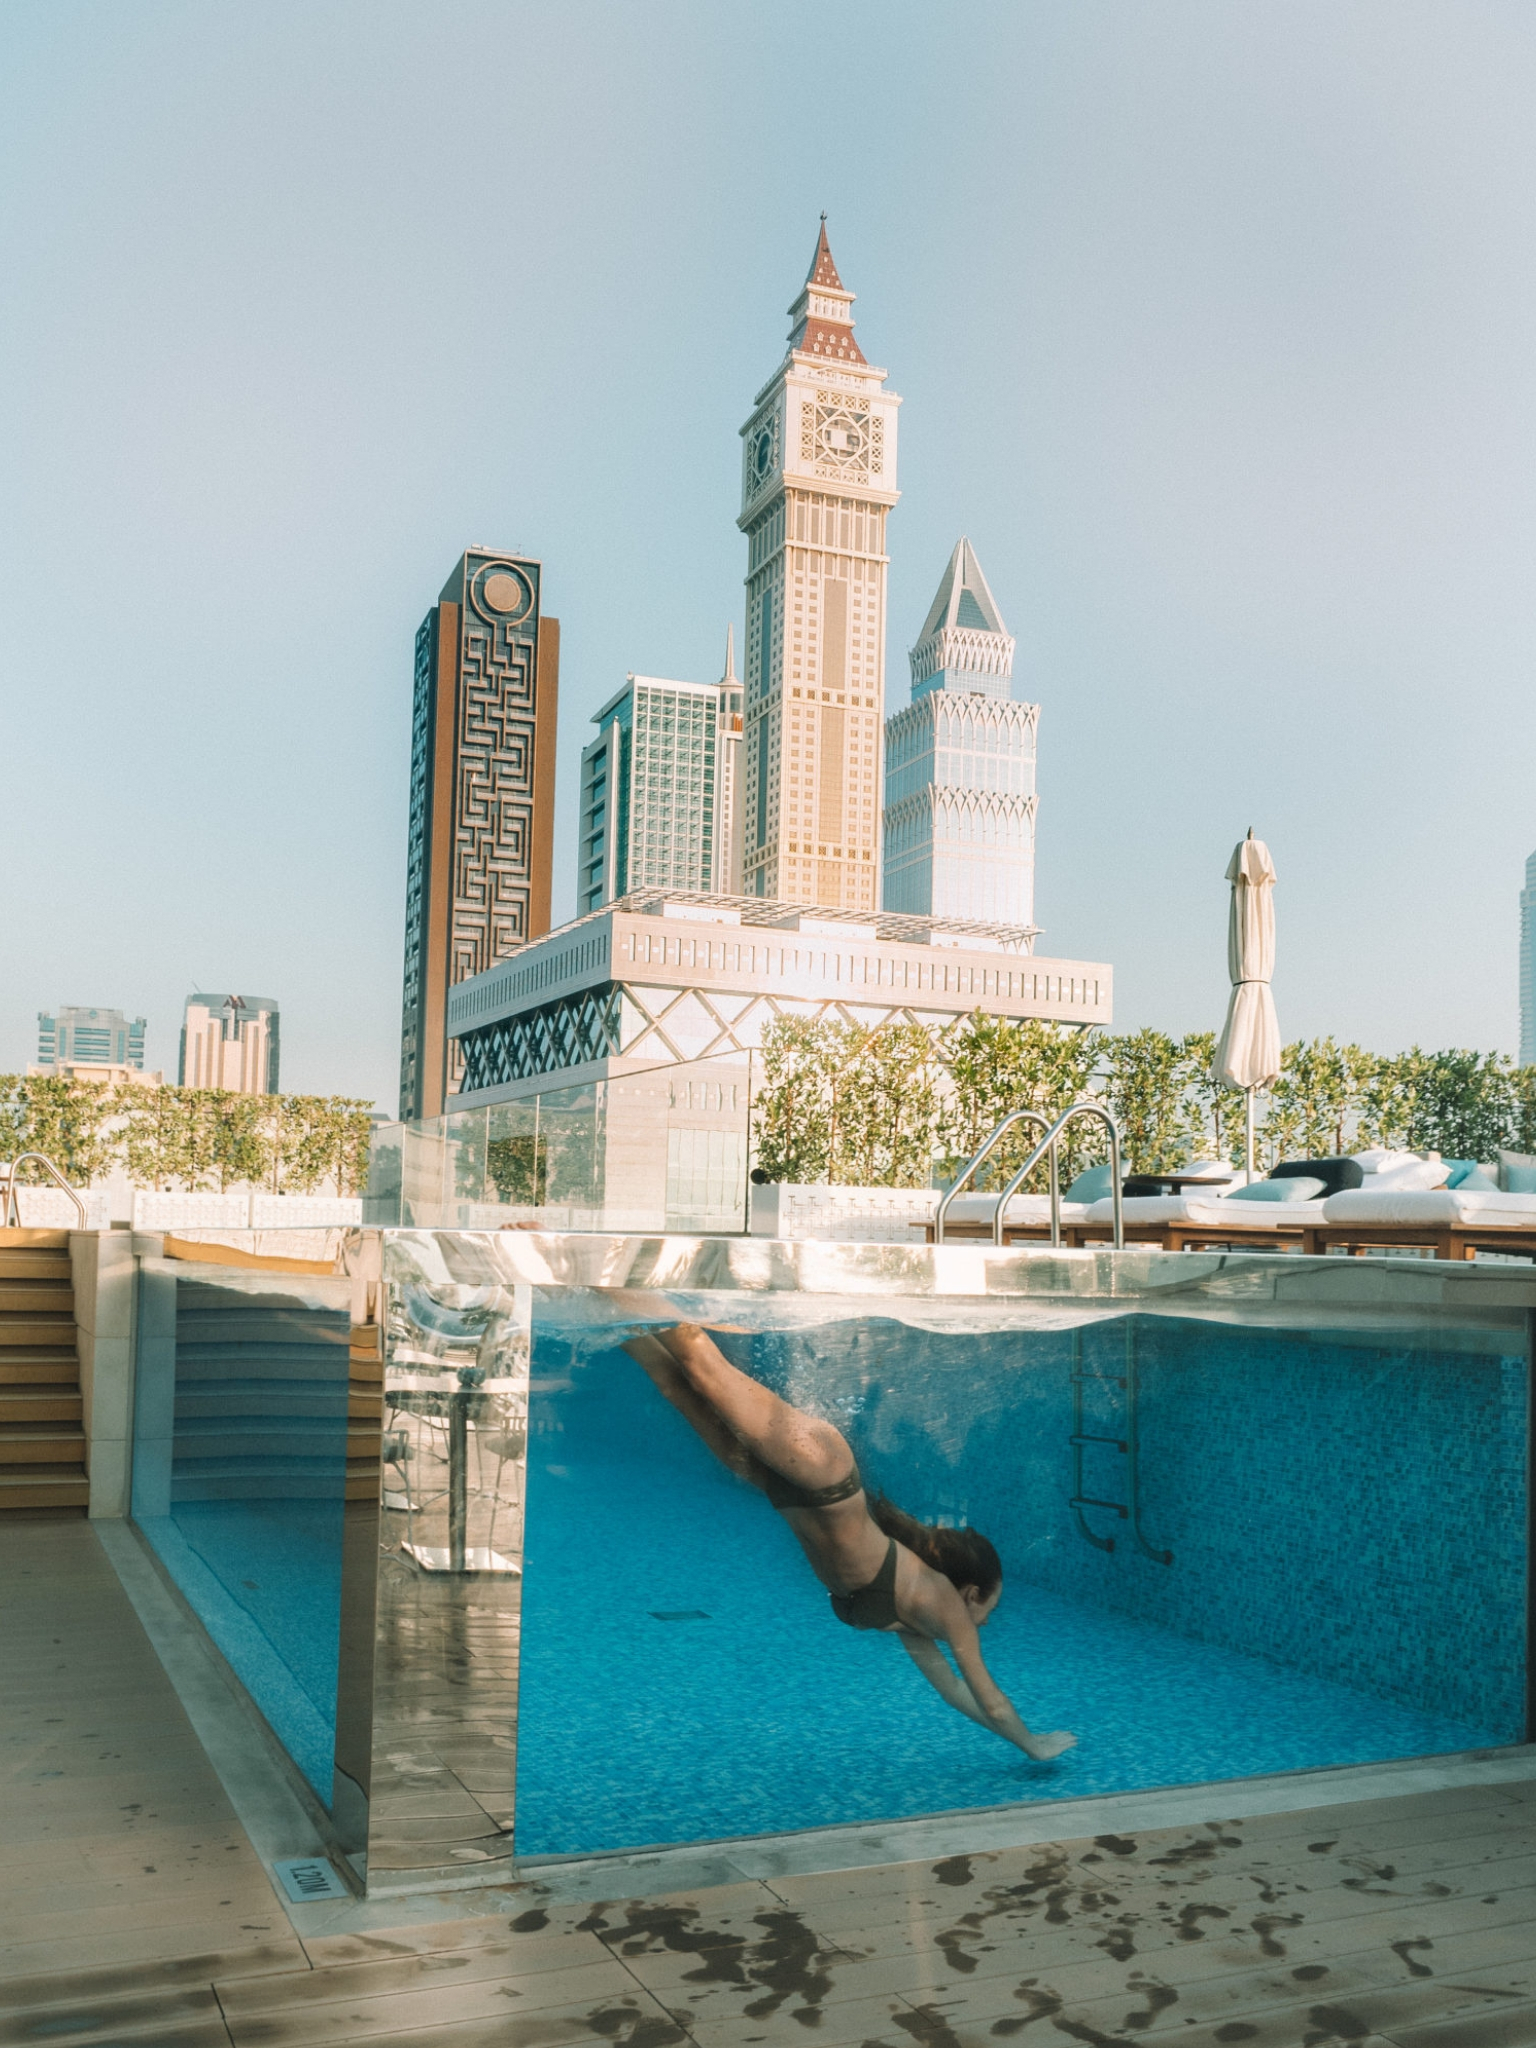 Dubai | WORLD OF WANDERLUST